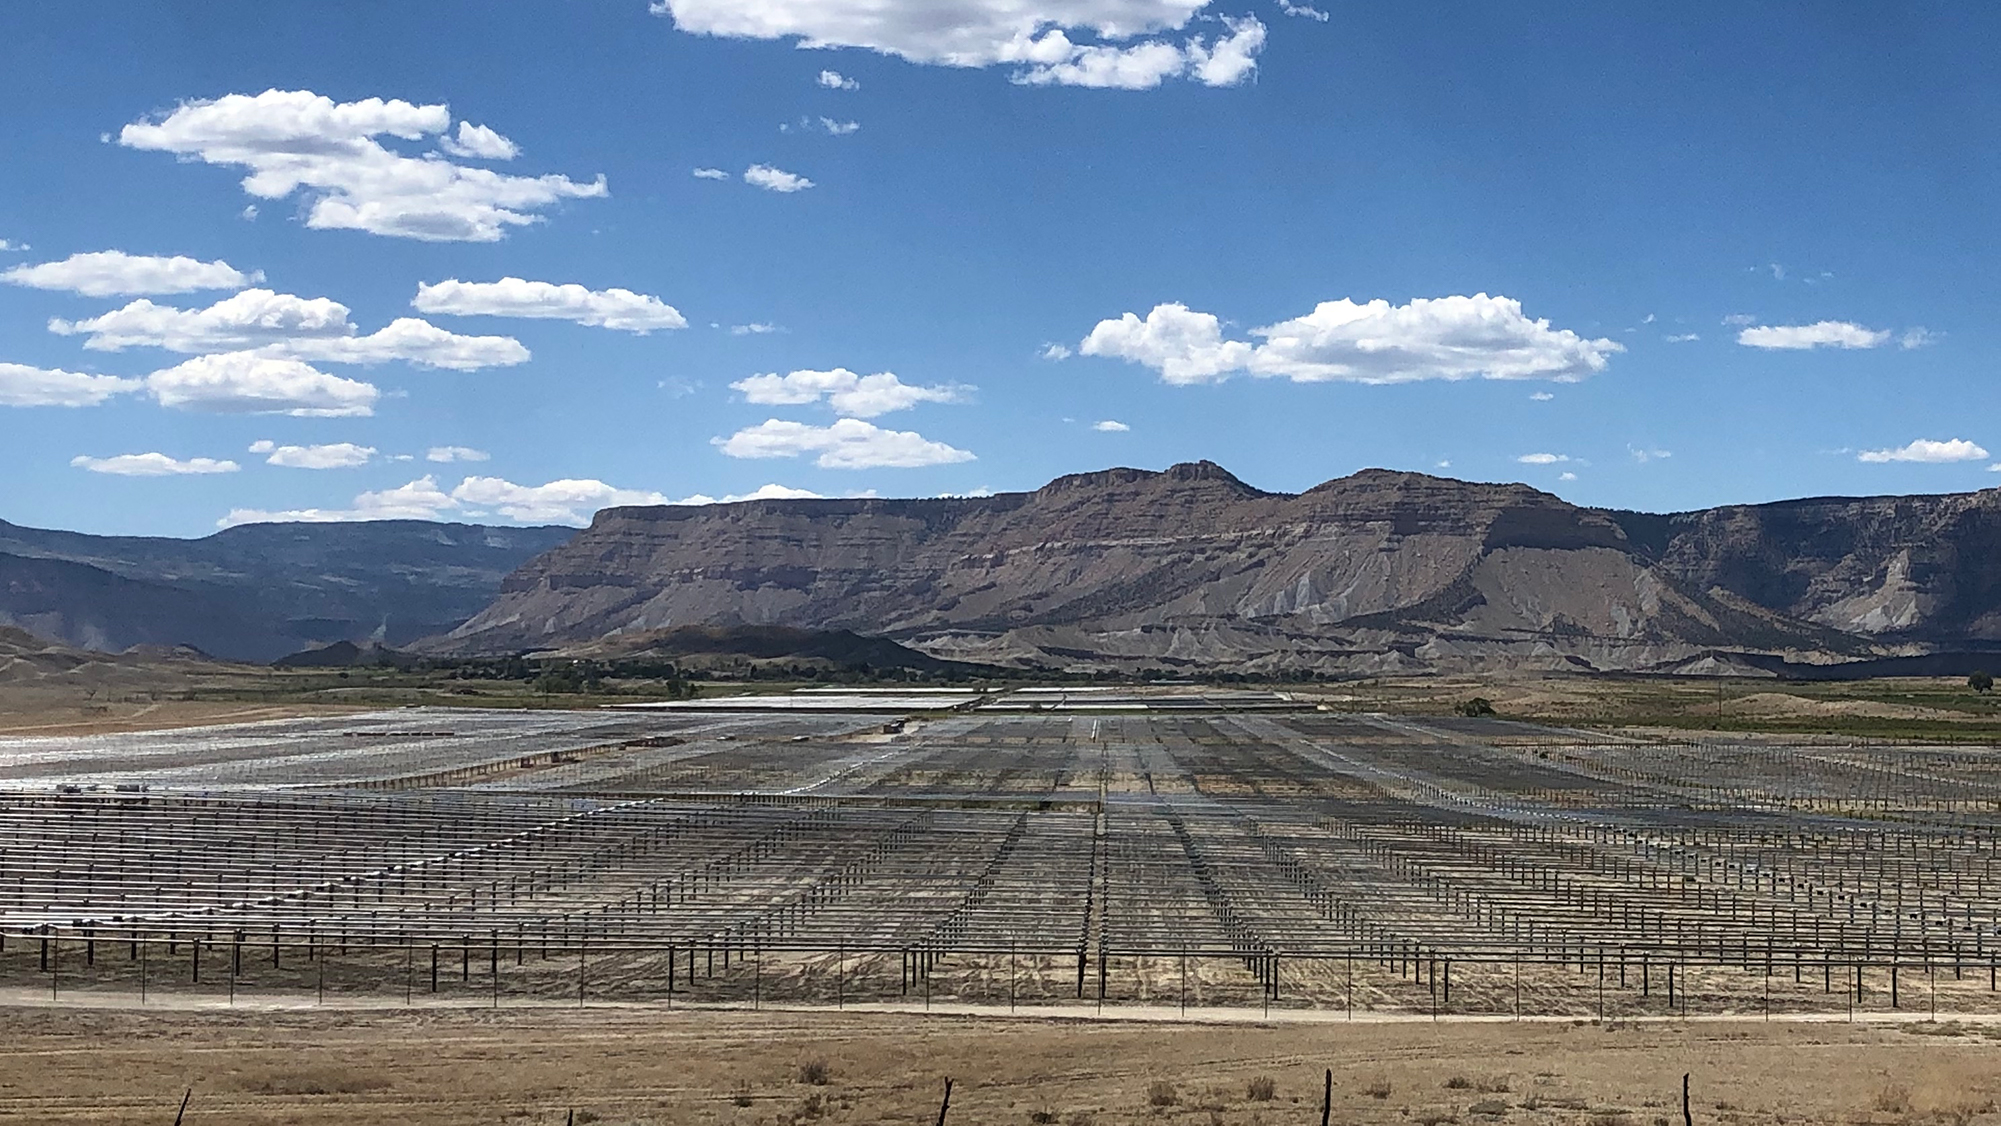 landscape photo of DESRI's Hunter Solar site in Emery County, Utah set against mountains and blue sky